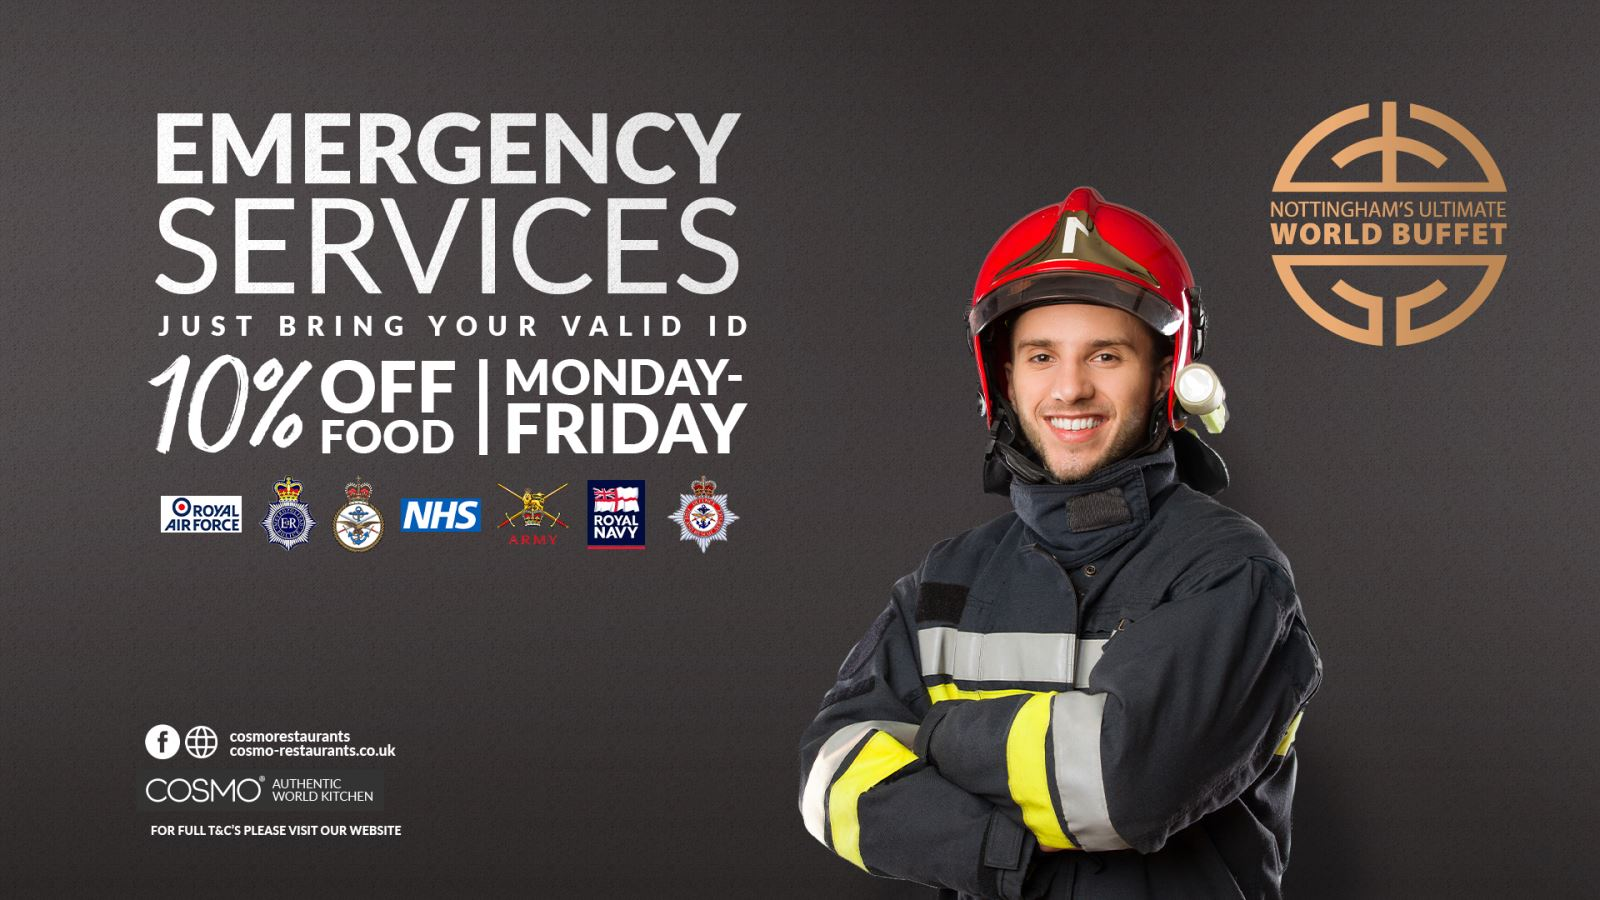 Emergency Services 10% Off Food (Mon - Fri)